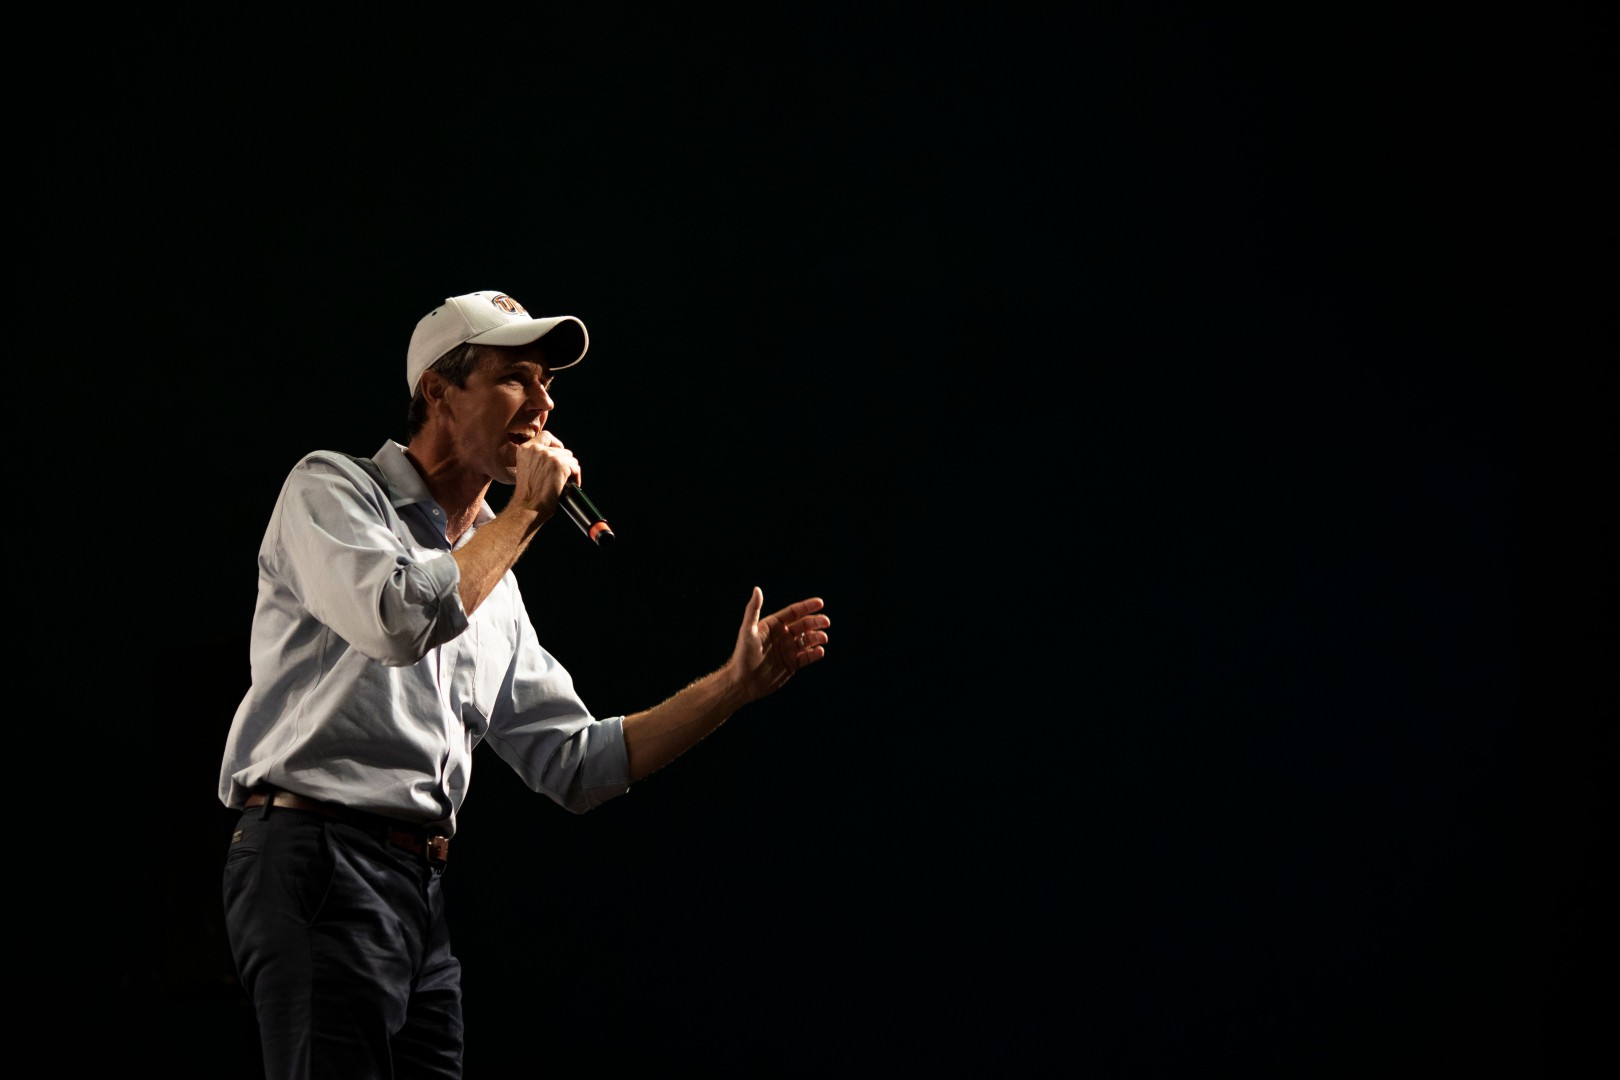 Texas Representative and Senatorial Democratic Party Candidate Beto O'Rourke delivers a speech at the University of Texas in El Paso, Texas, on November 5, 2018, the night before the U.S. midterm elections. - In traditionally Republican Texas, popular Democrat Beto O'Rourke is trying to dethrone Senator Ted Cruz. (Photo by Paul Ratje / AFP)